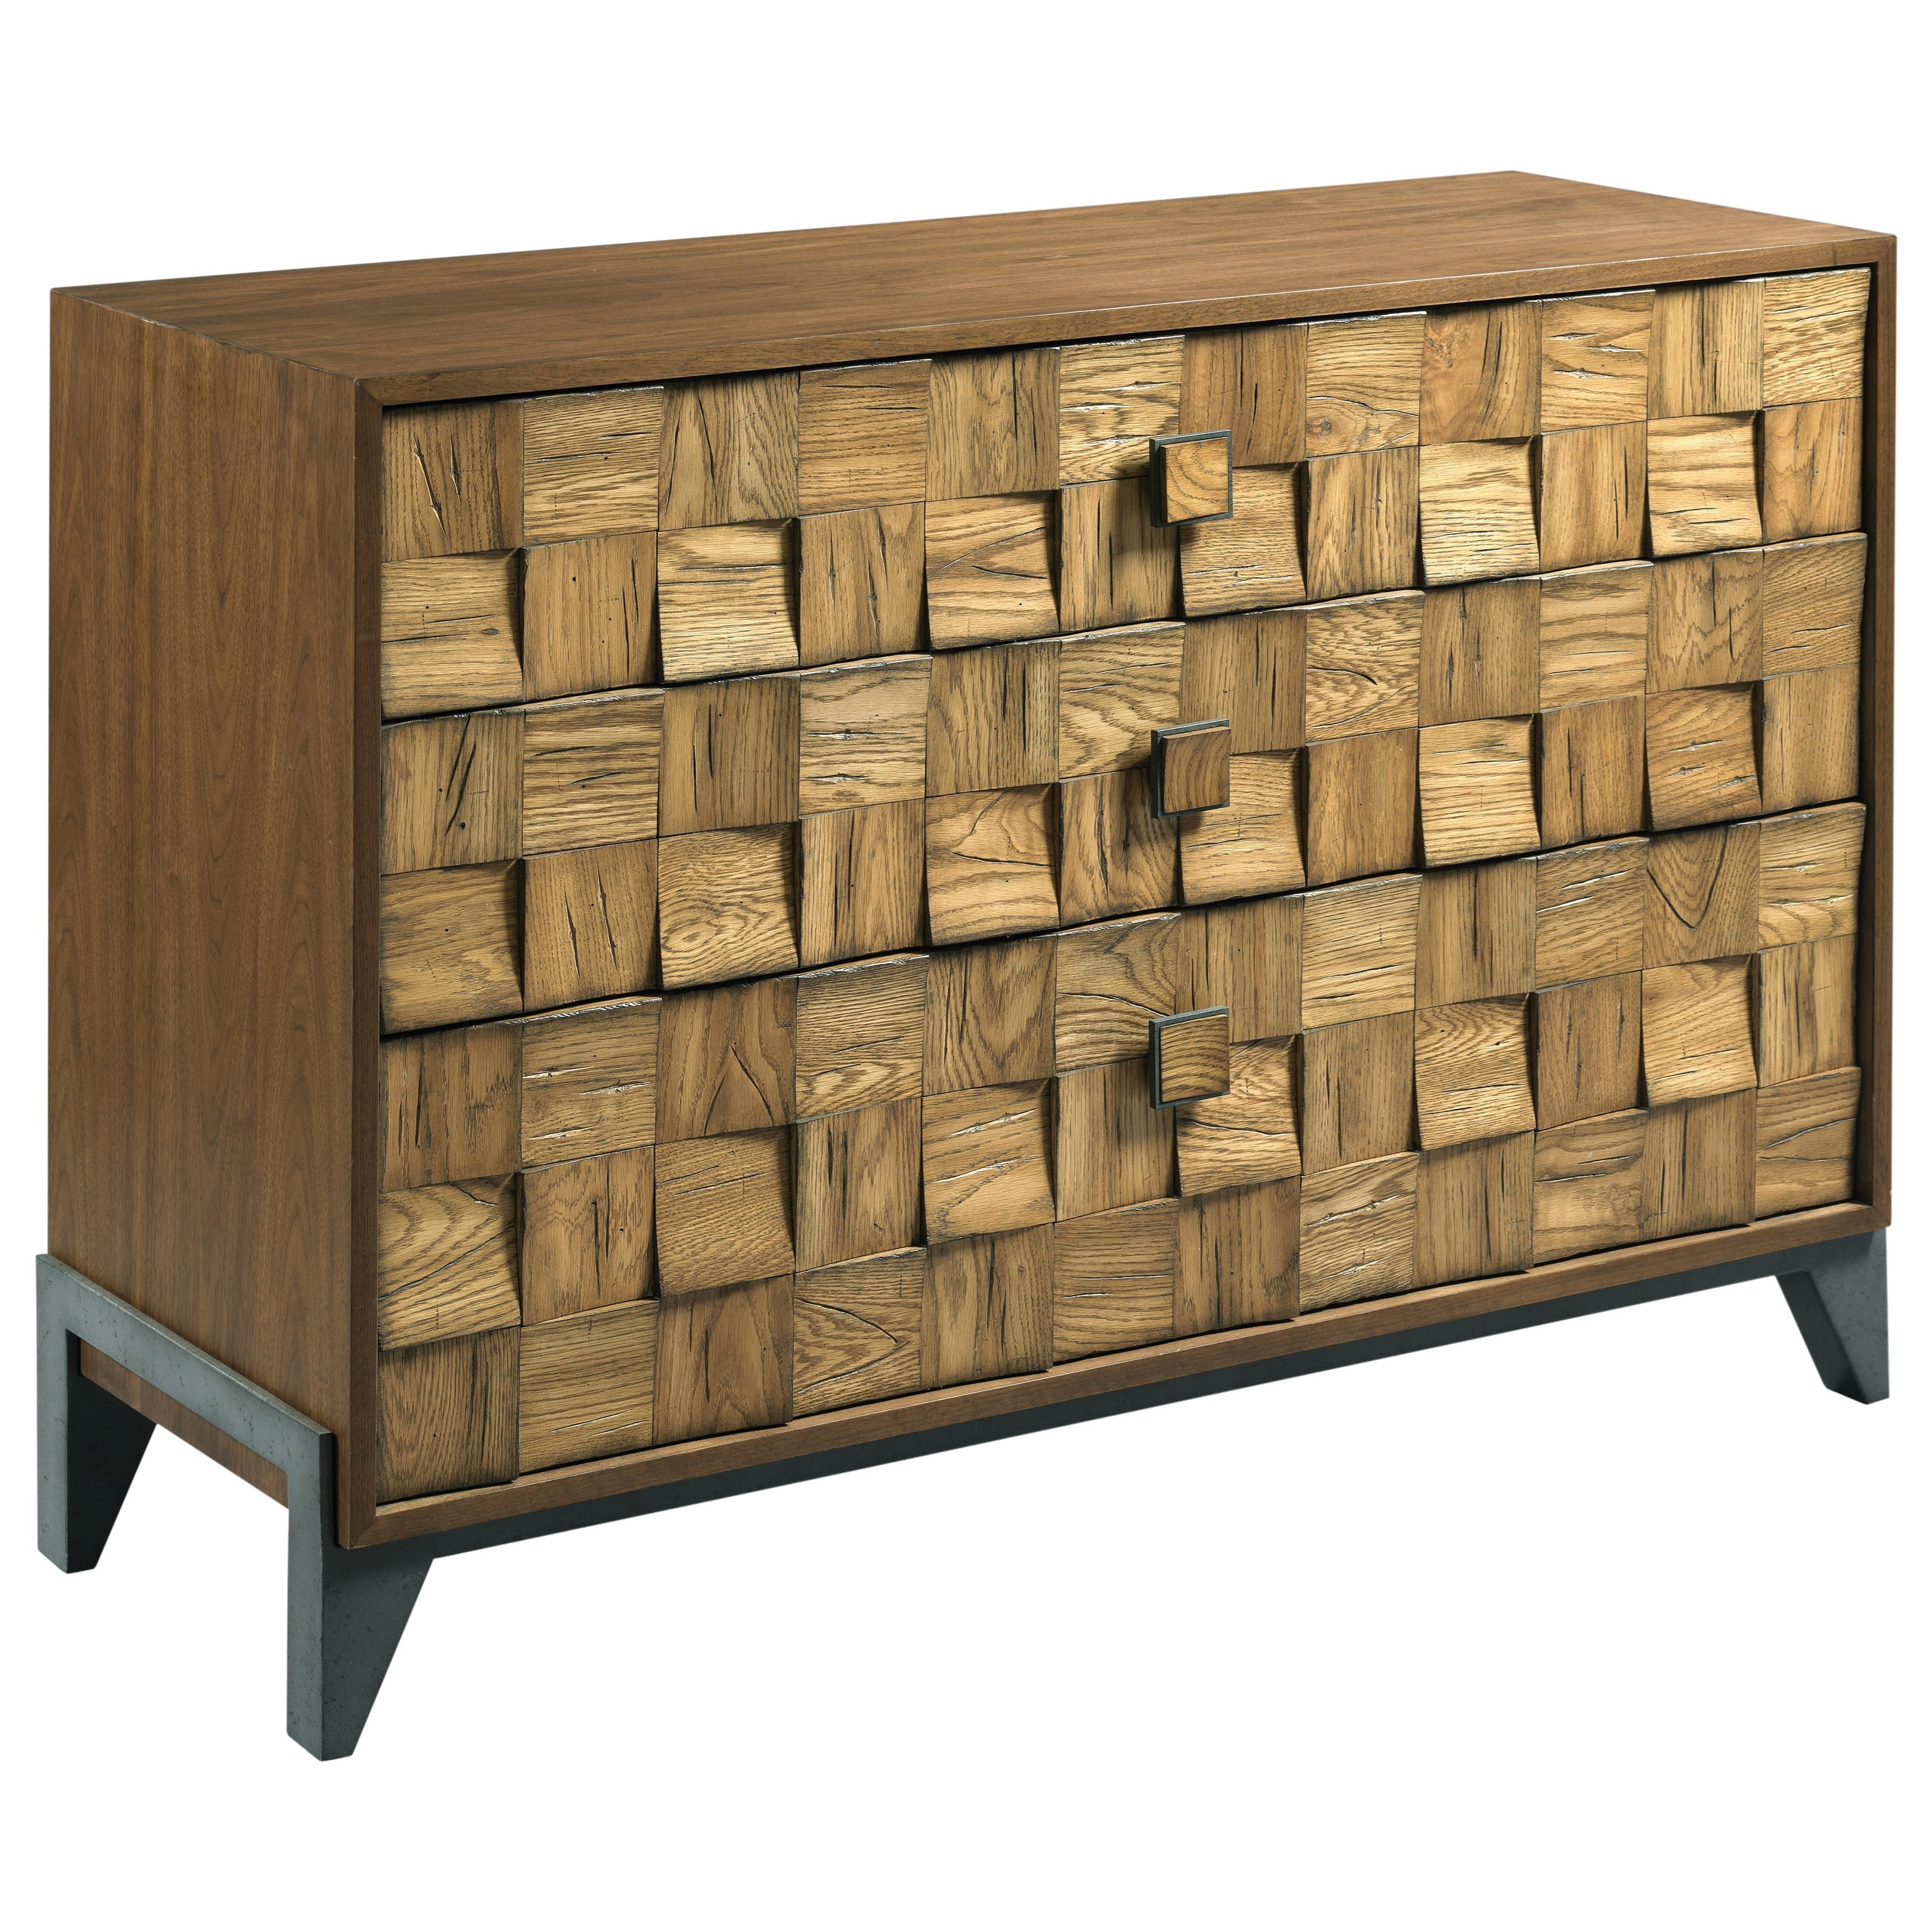 Synergy Pattern Console by Hammary at Red Knot